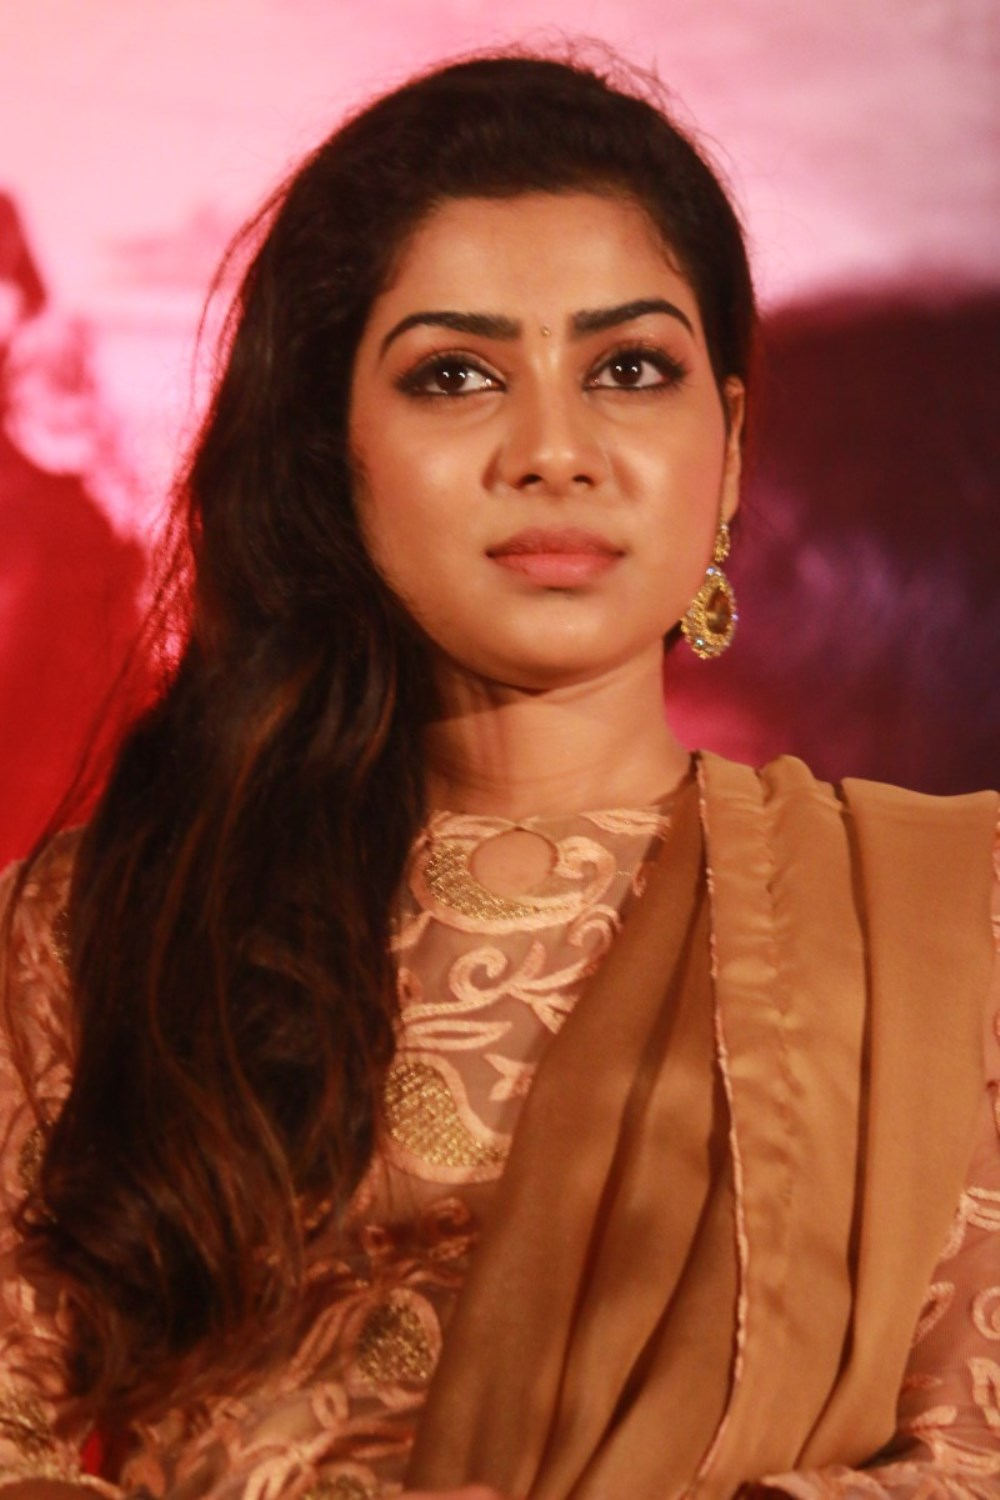 Pichaikkaran tamil movie actress name